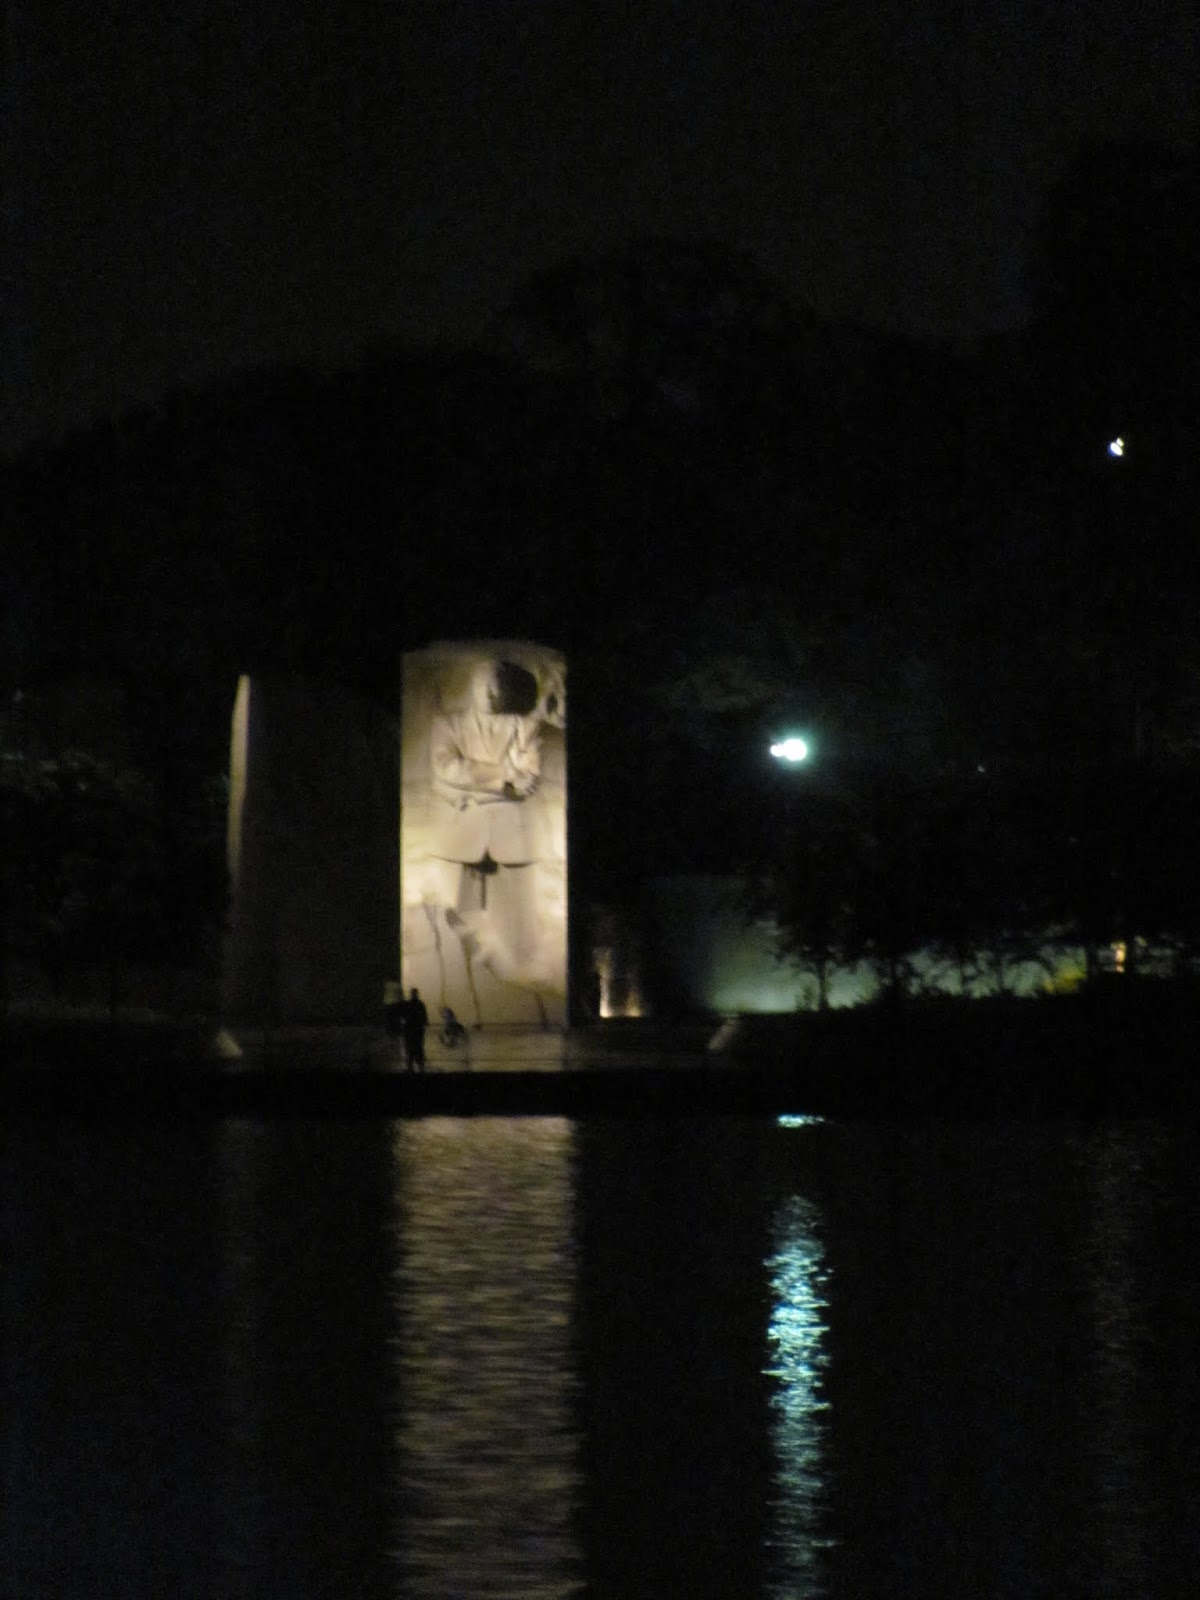 Pictured at night from across the tidal basin in Washington, DC